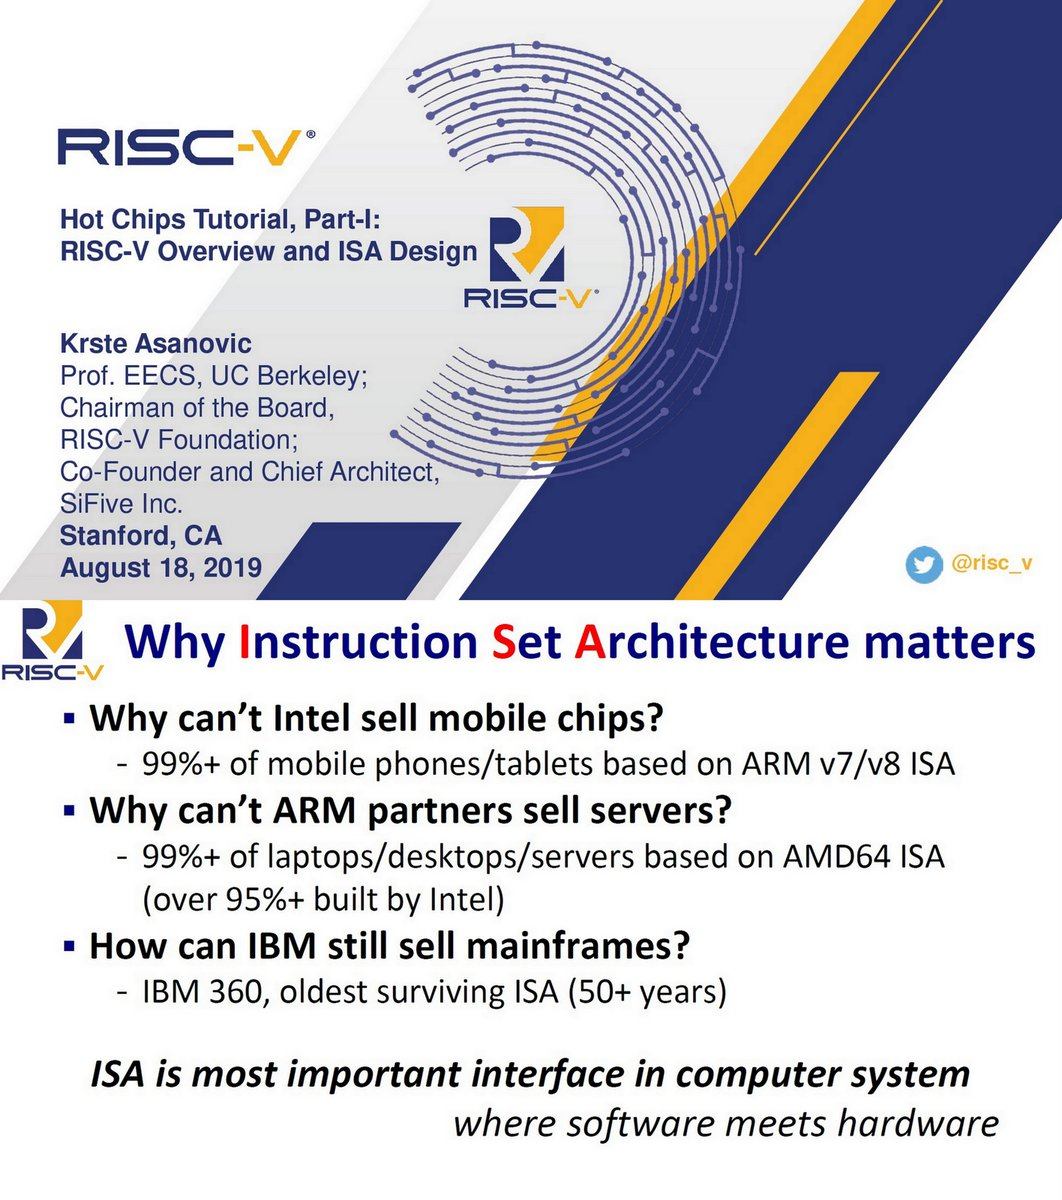 Ogawa Tadashi On Twitter Pushing Data From Edge To Cloud Innovations In Cpu Architecture Caffrey Chen Chief Processor Architect At Alibaba T Head Alibaba Gr Risc V Summit Dec 11 2019 Https T Co 0zjl6qkx2v C910